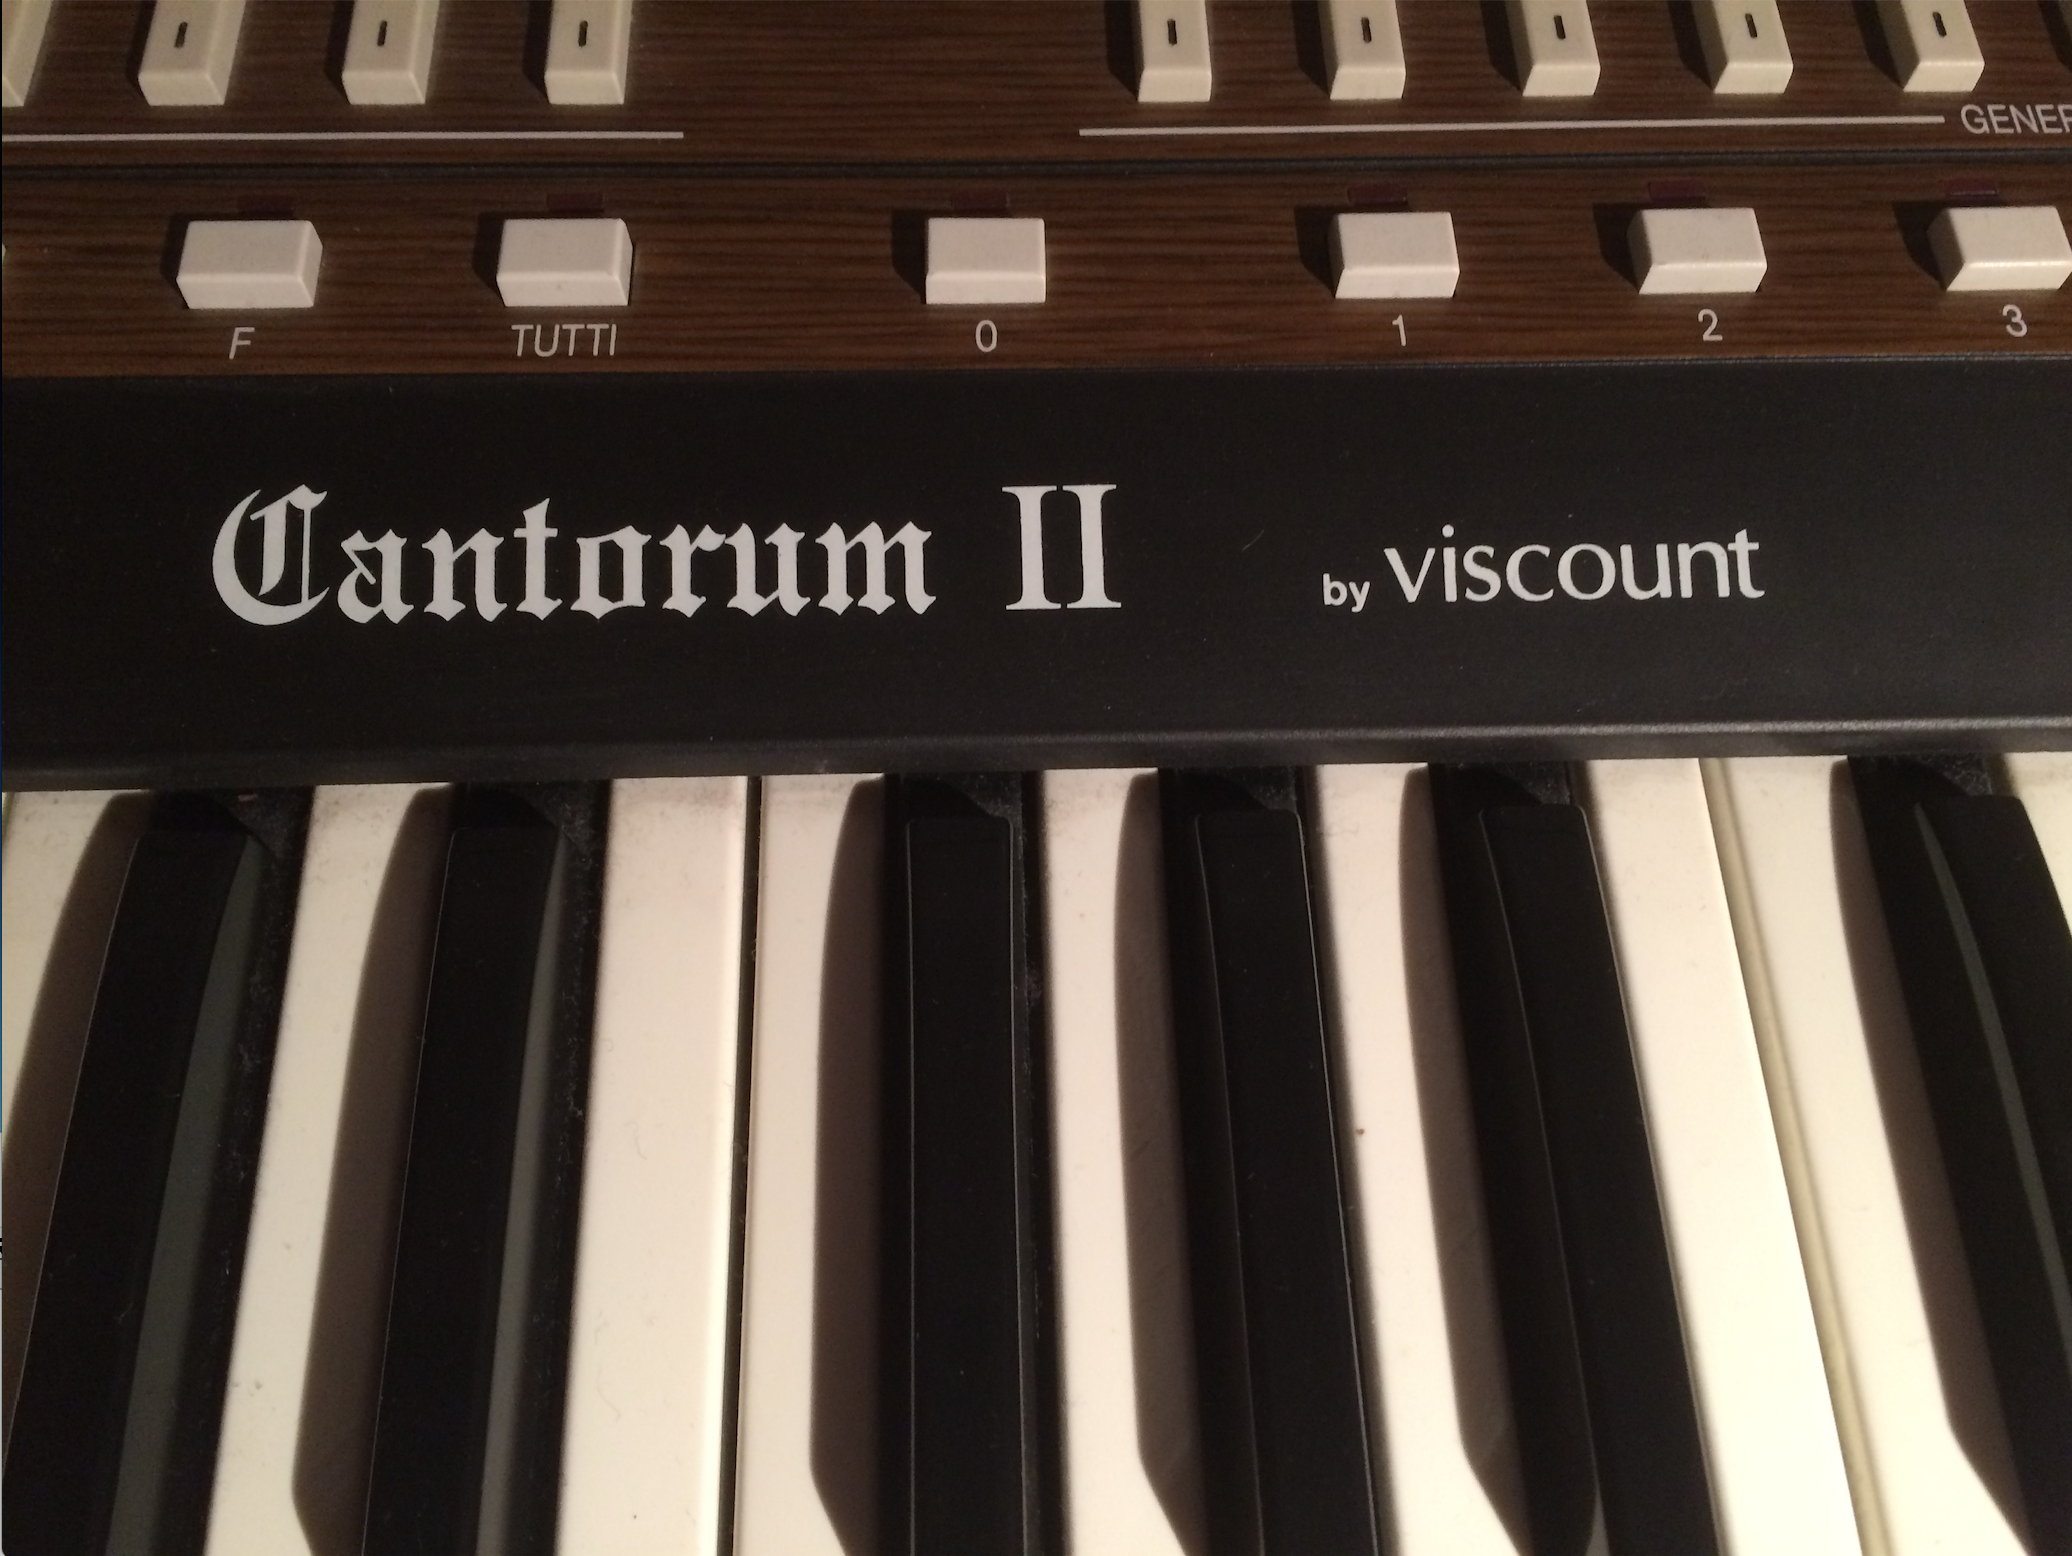 Guid chant cantorum_II_by_viscount